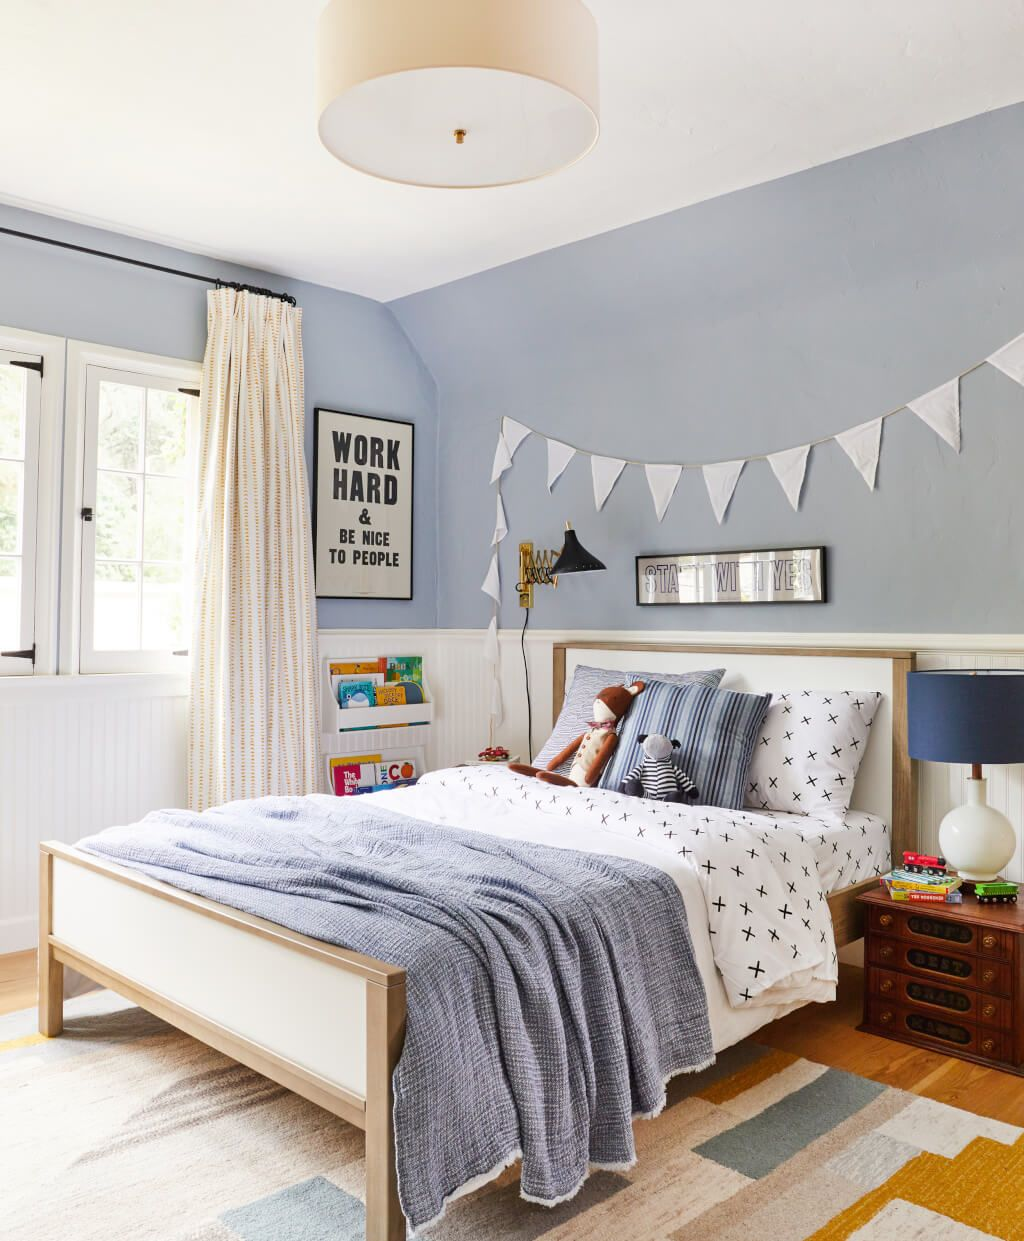 Very Colorful Bedroom: Blue, Mustard And White Make For A Very Cute Color Palette